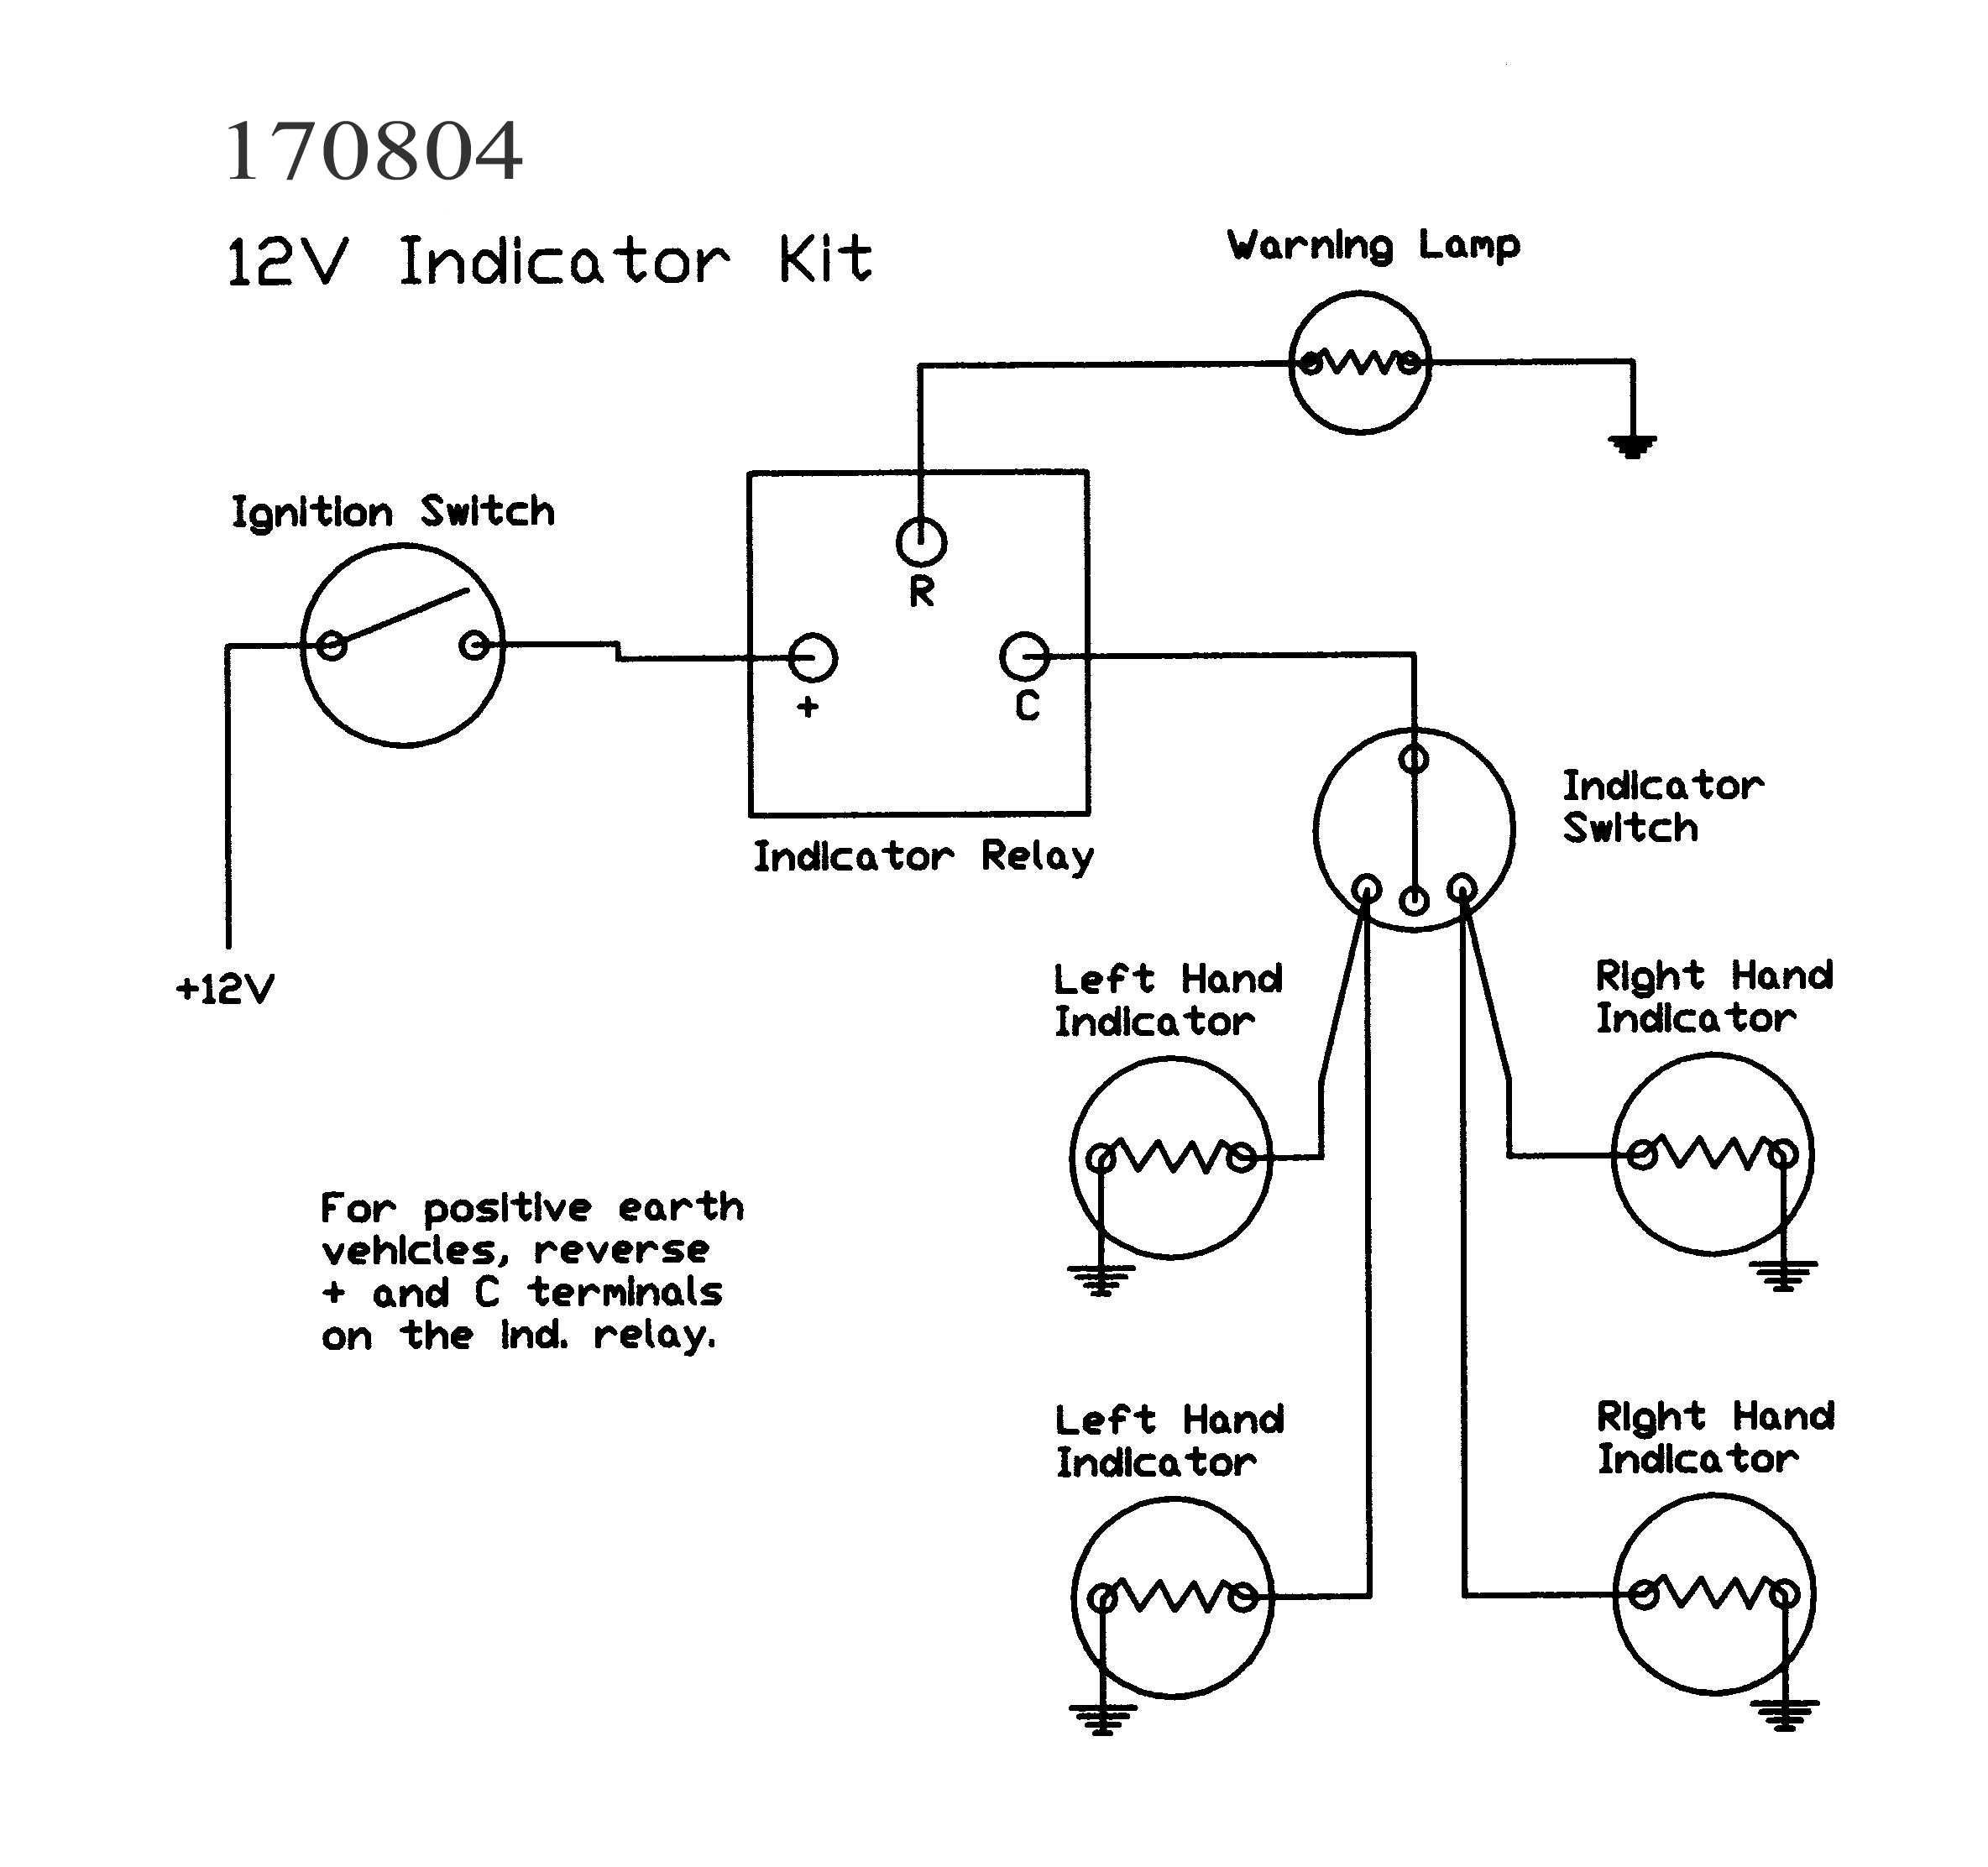 Wiring diagrams relays definition of water pollution diagram steam flasher relay wiring diagram free download wiring diagrams 170804 2812v29 schematic flasher relay cheapraybanclubmaster Image collections